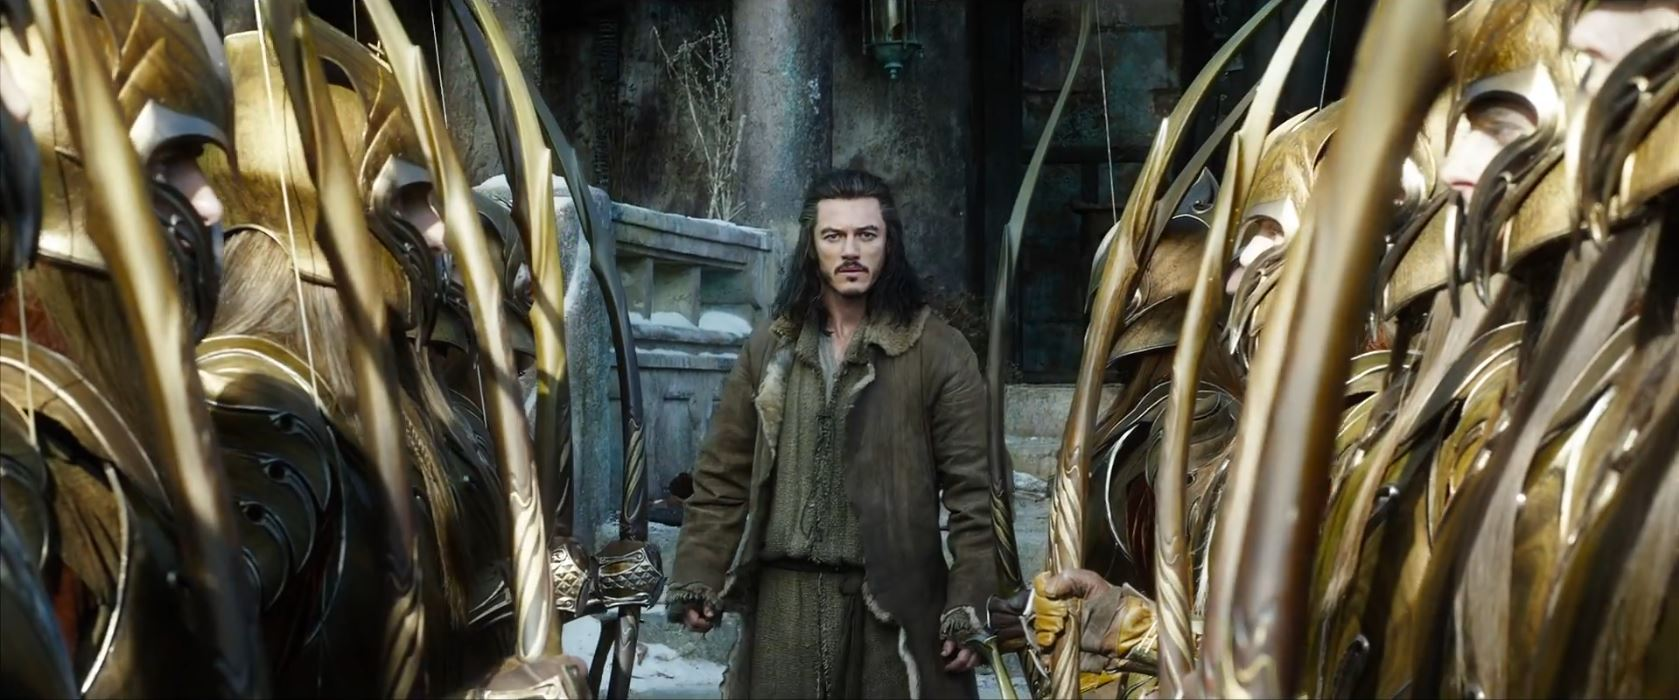 The Hobbit The Battle of the Five Armies Trailer - The Bard